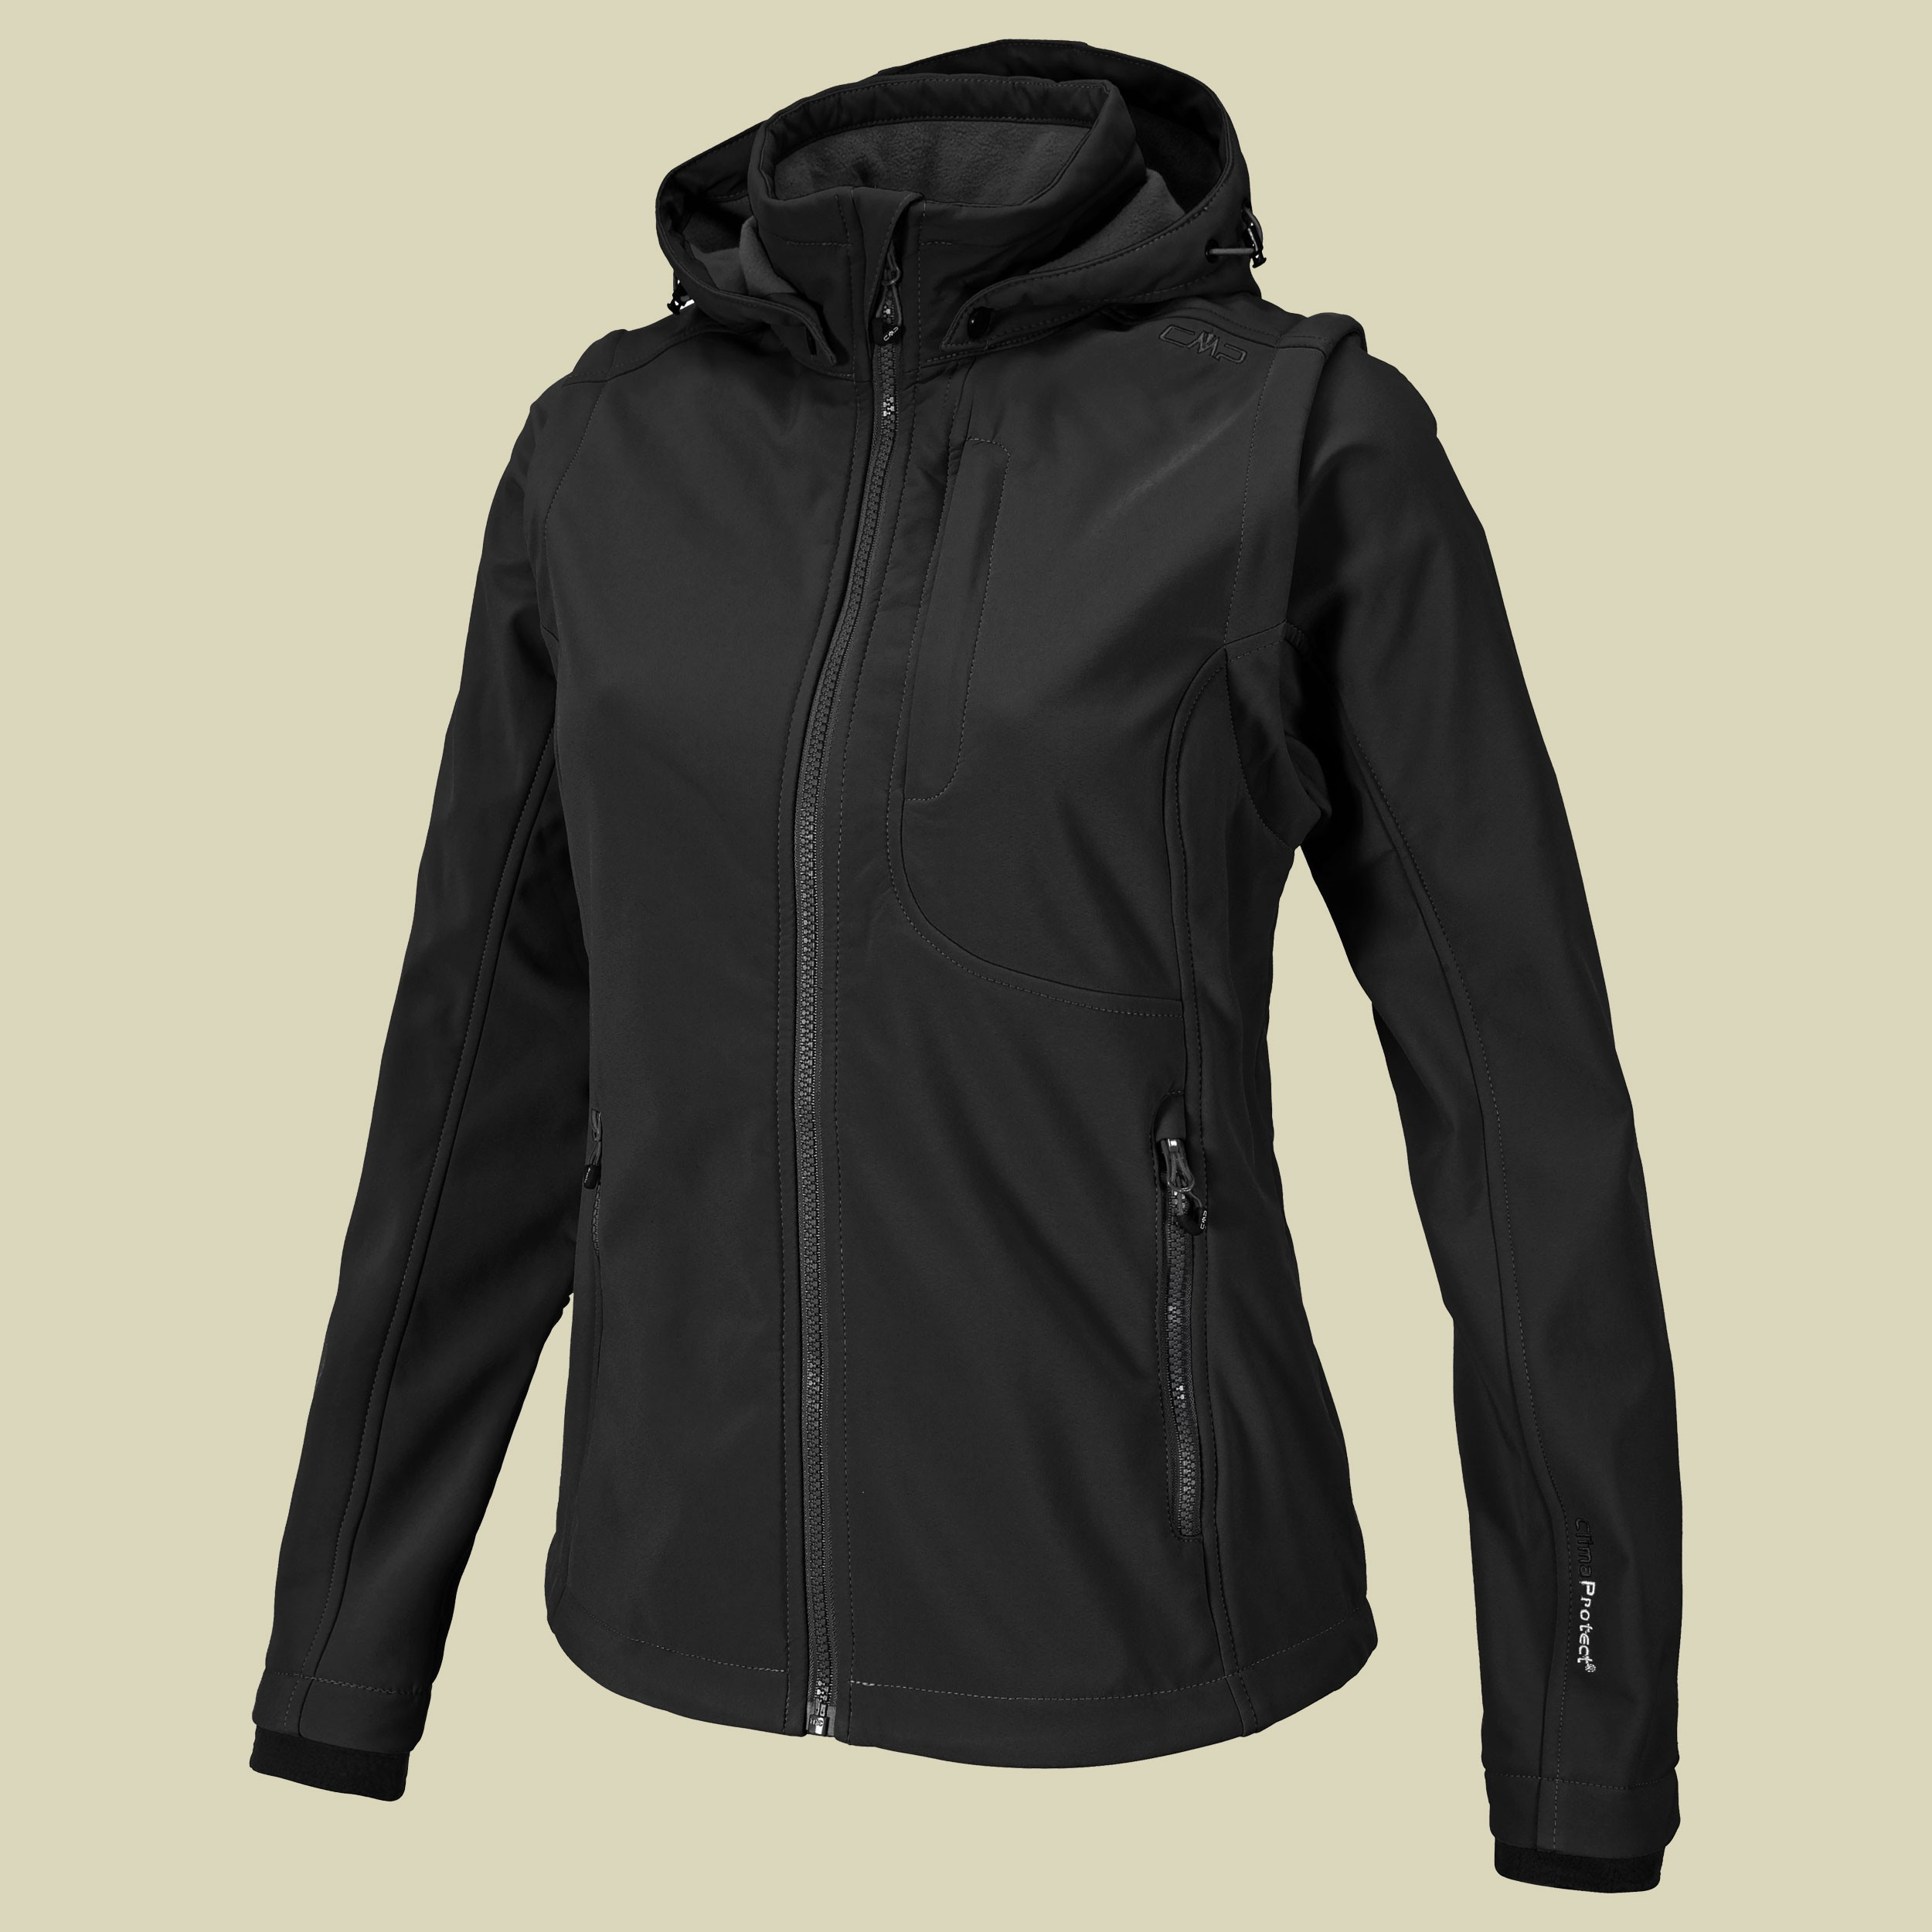 Woman Softshell Jacket Zip Off Sleeves 3A74326